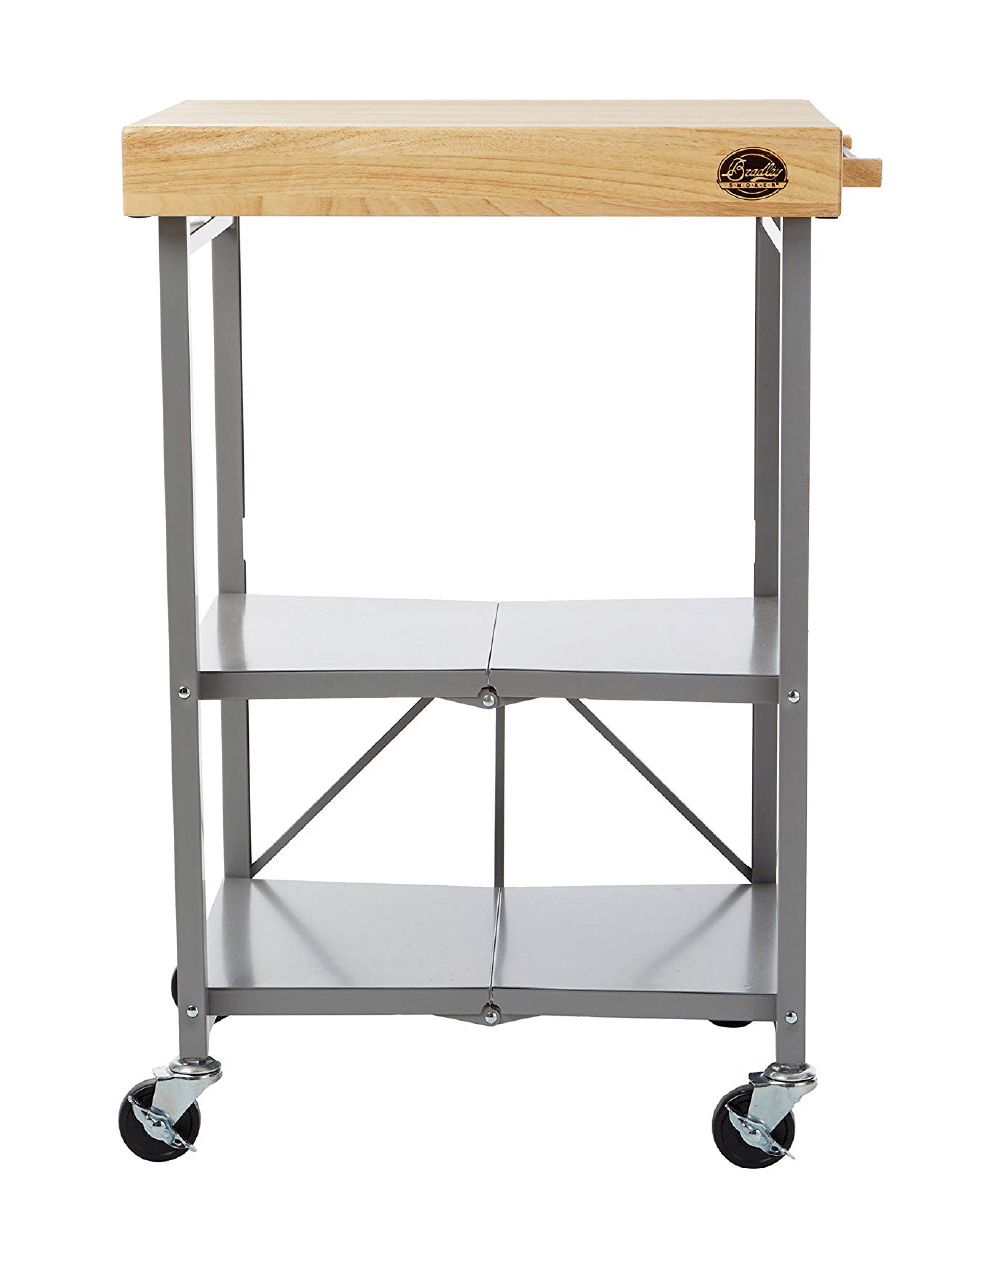 Bradley Smoker Foldable Cart on Wheels, Wood top, Steel Grey Frame